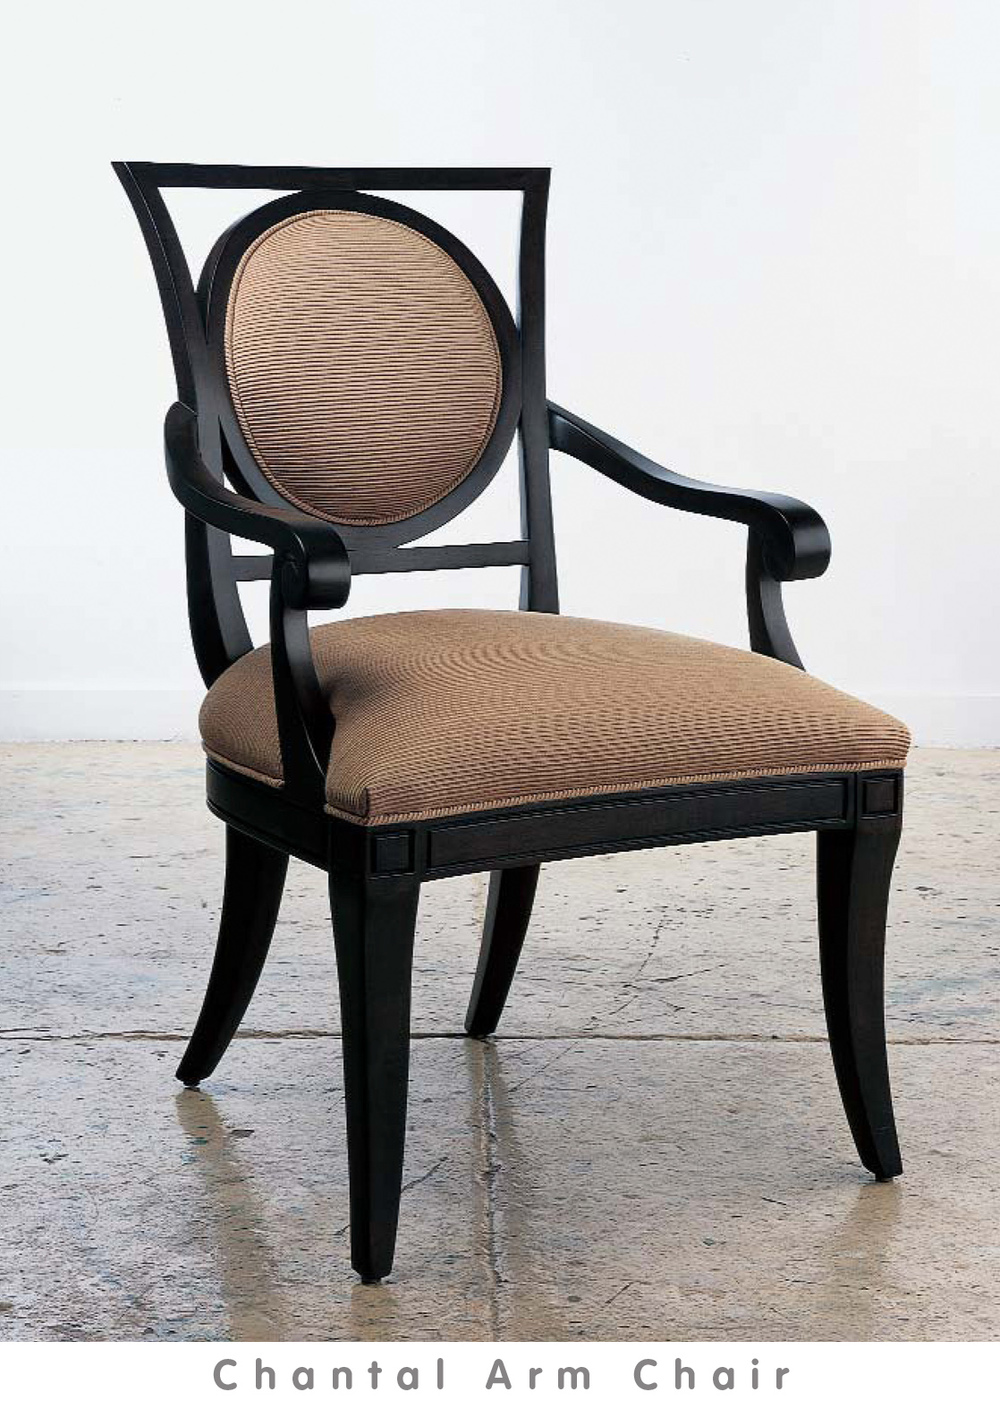 Chantal Arm Chair